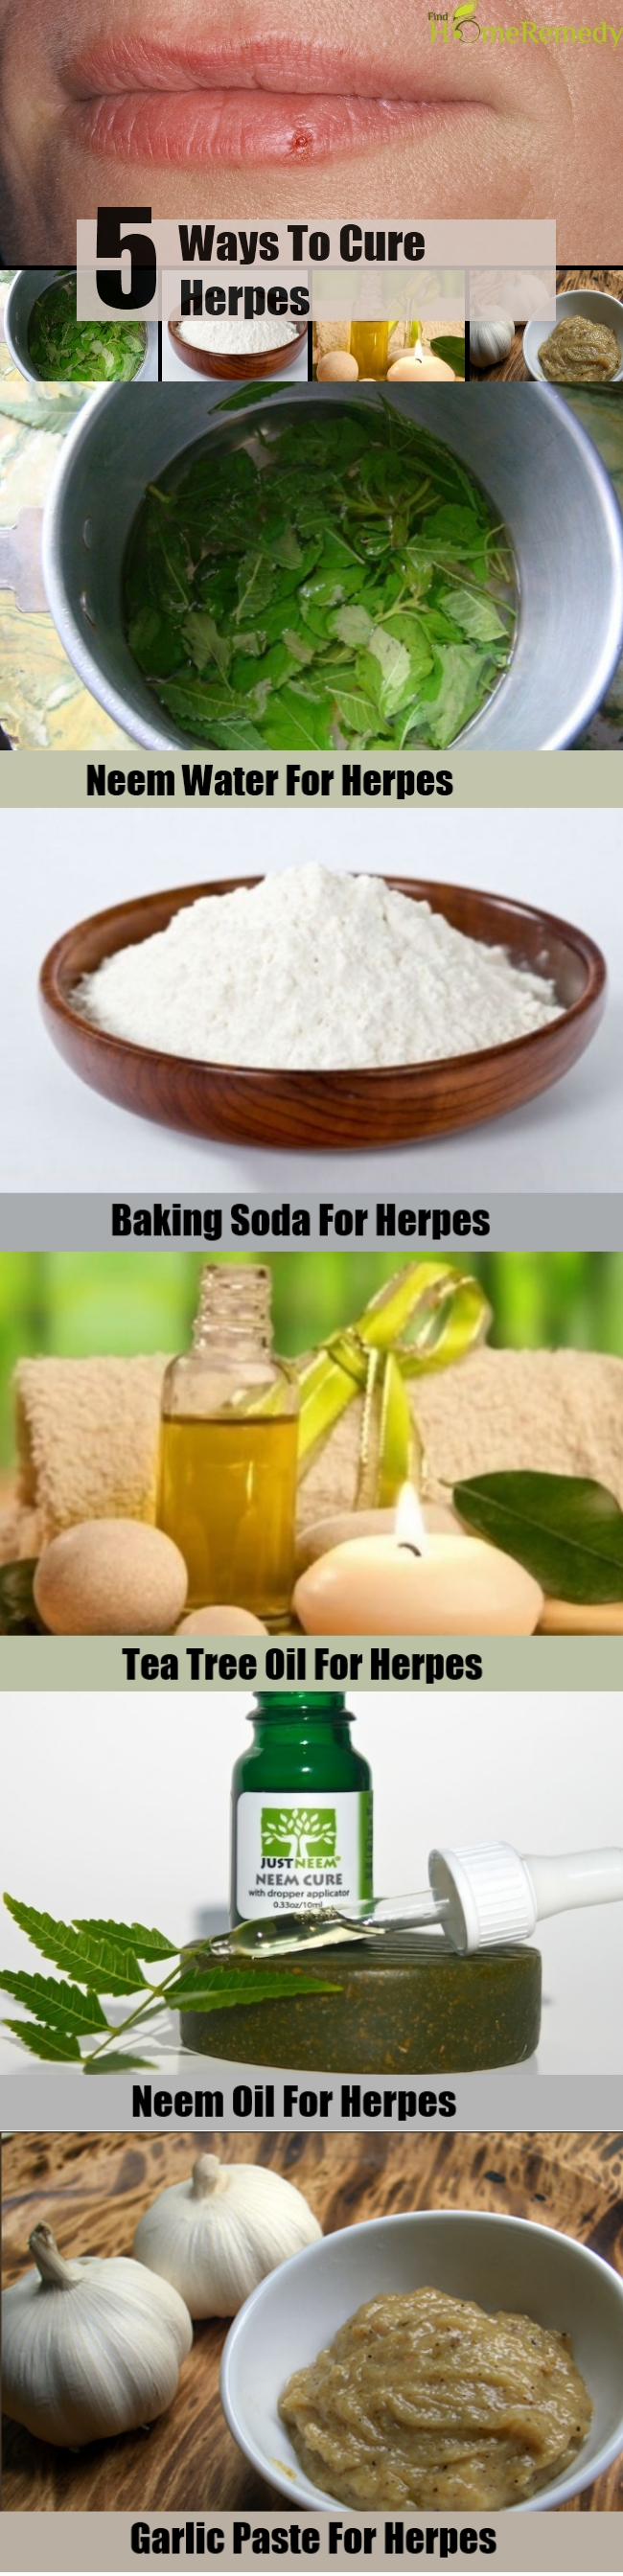 Various 5 Best And Effective Ways To Cure Herpes | Find Home Remedy